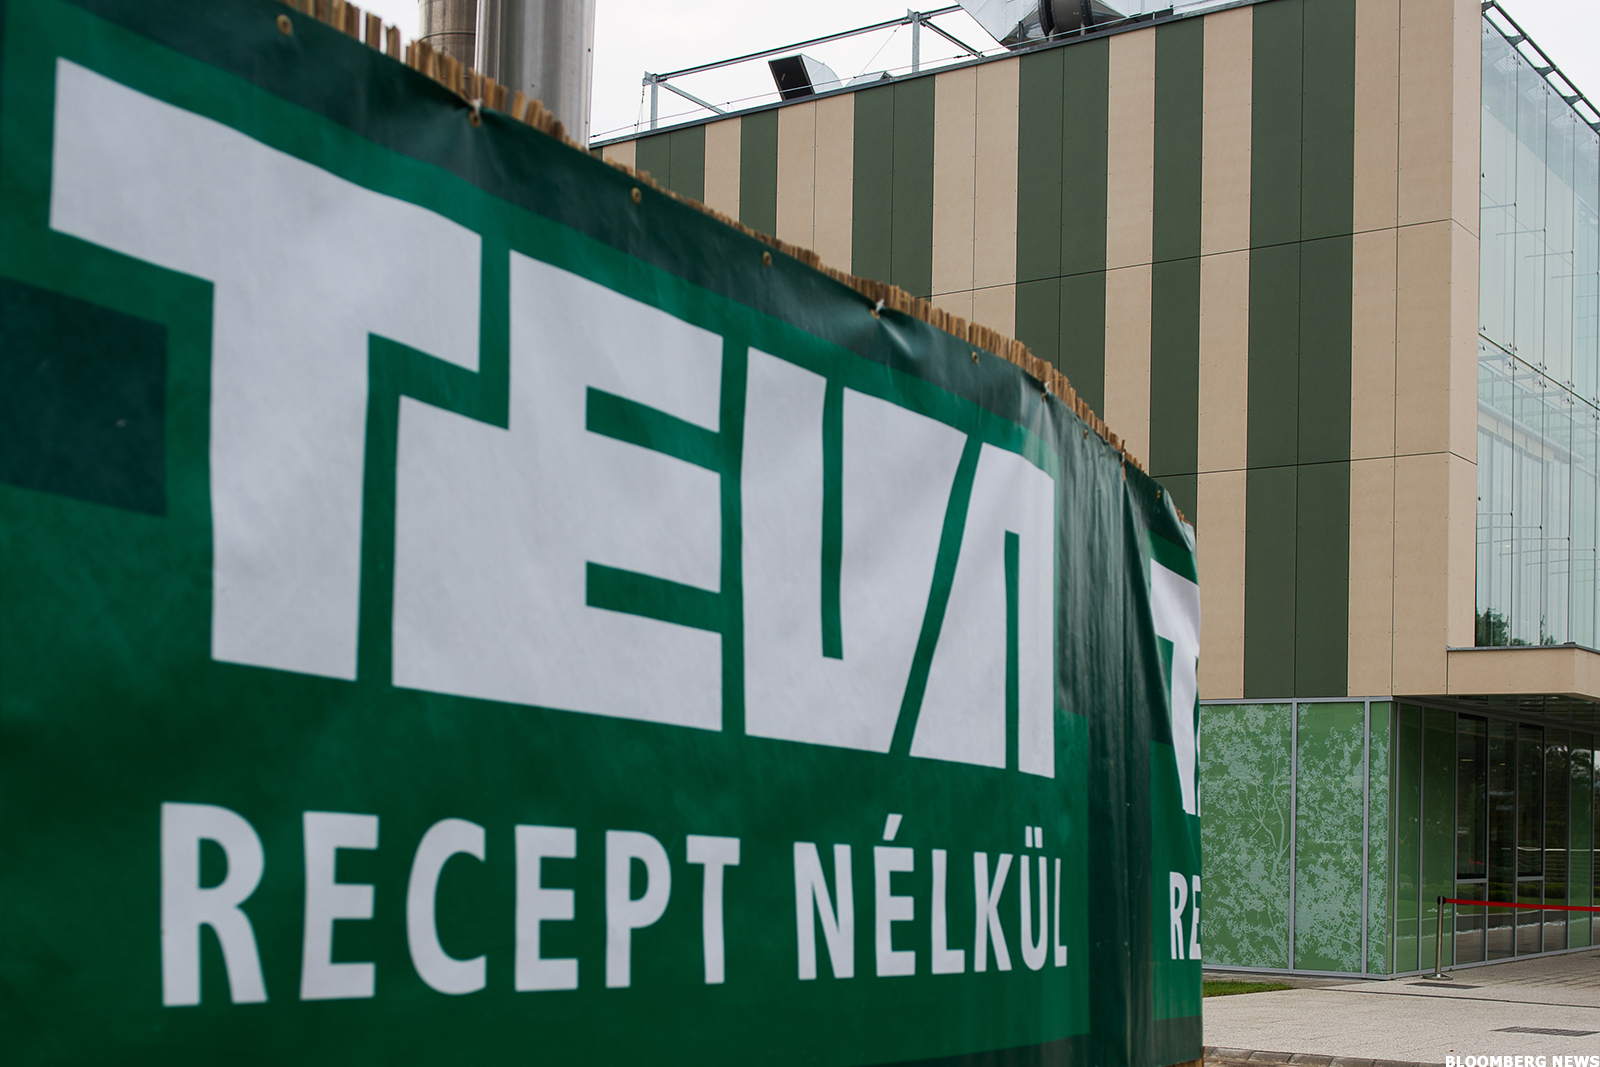 Hot Stock Overview: Teva Pharmaceutical Industries Limited (NYSE:TEVA)